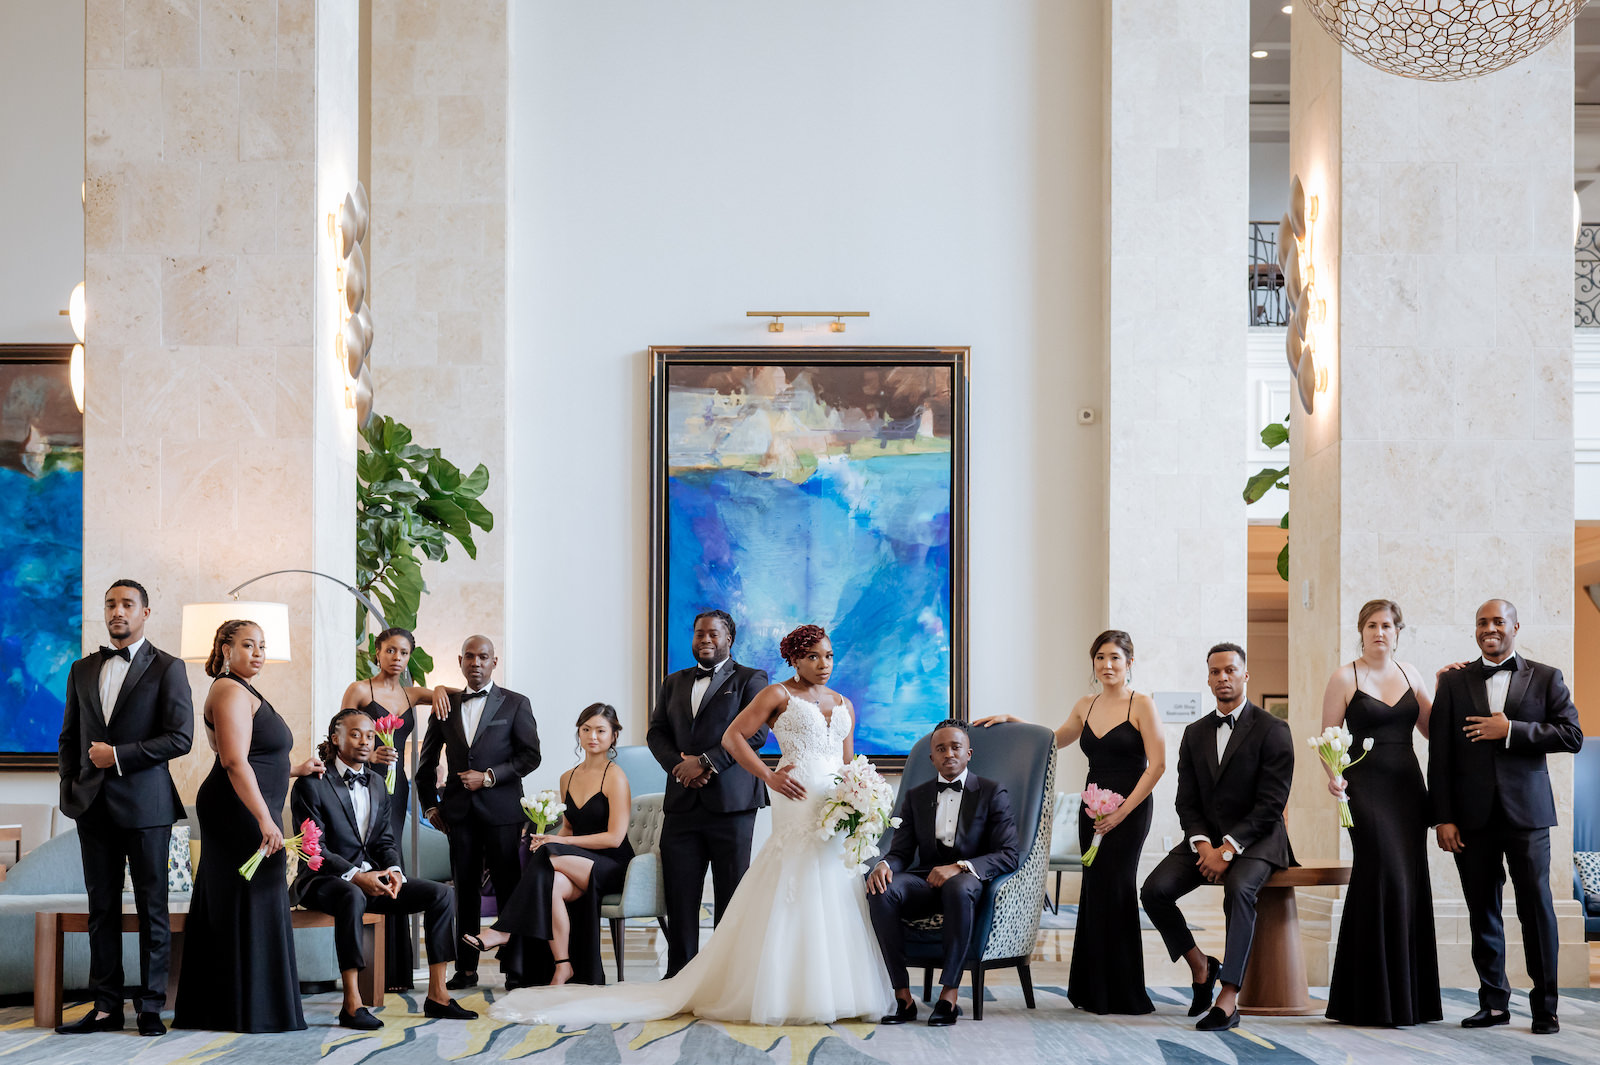 Black and White Wedding Party Indoor Portrait   Groom Wearing Modern Navy Suit with Black Satin Lapel and Bow Tie   Ivory Spaghetti Strap Scoop Back Lace and Tulle Mermaid Martina Liana Wedding Dress Bridal Gown   Black Long Jenny Yoo Bridesmaid Dresses from Tampa Dress Shop Bella Bridesmaids   The Black Tux Groomsmen Suits